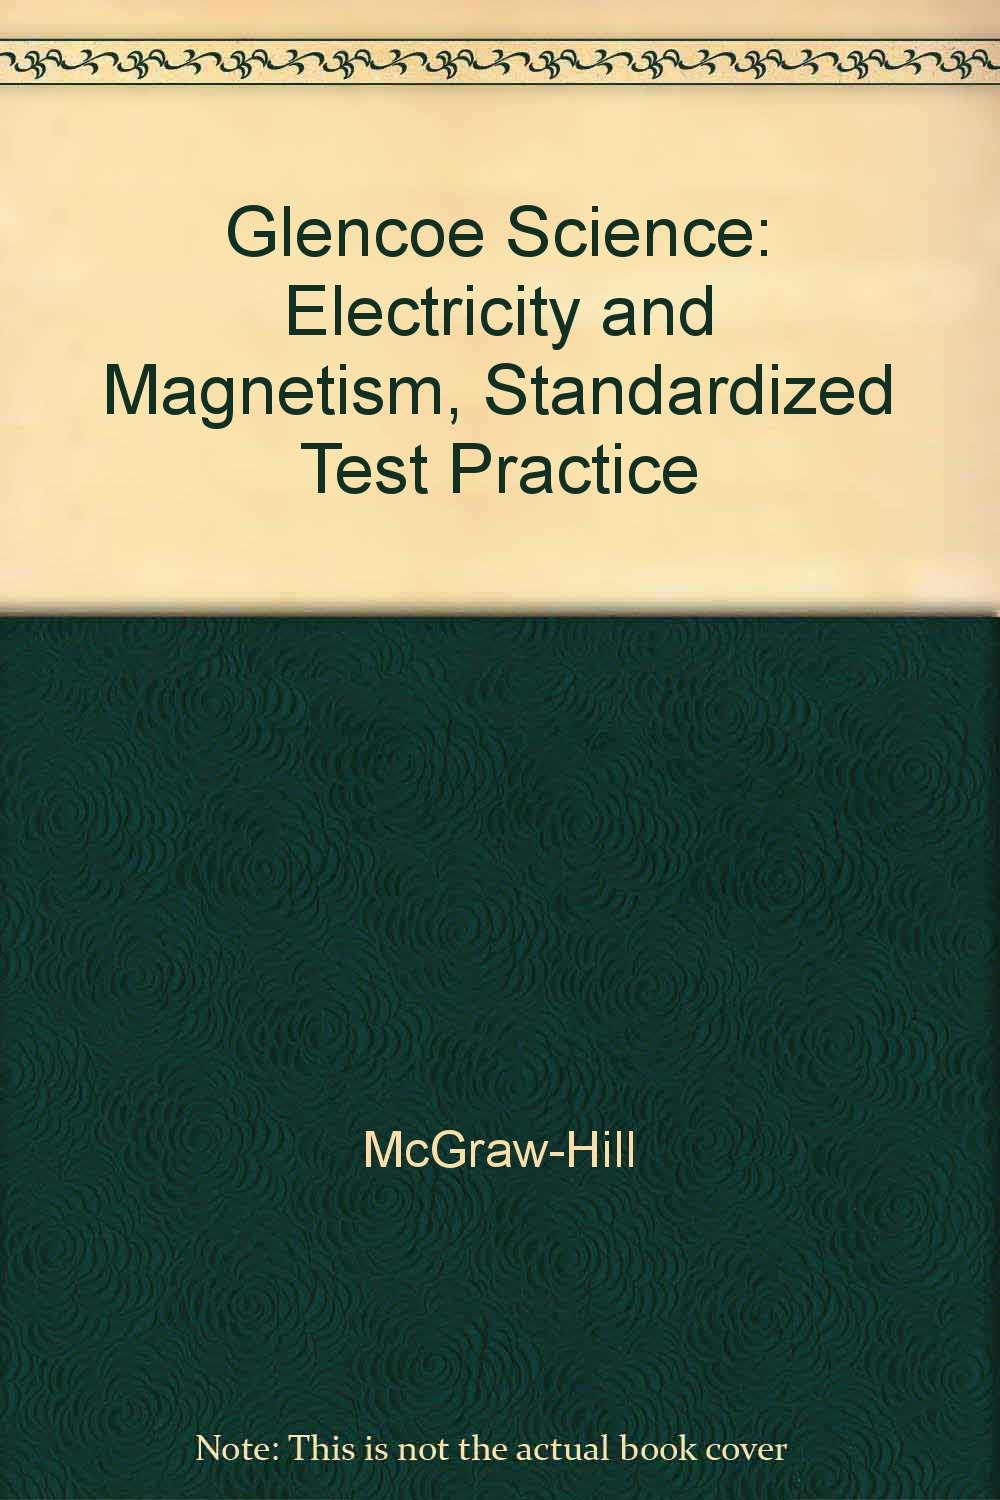 Glencoe Science: Electricity and Magnetism, Standardized Test Practice pdf